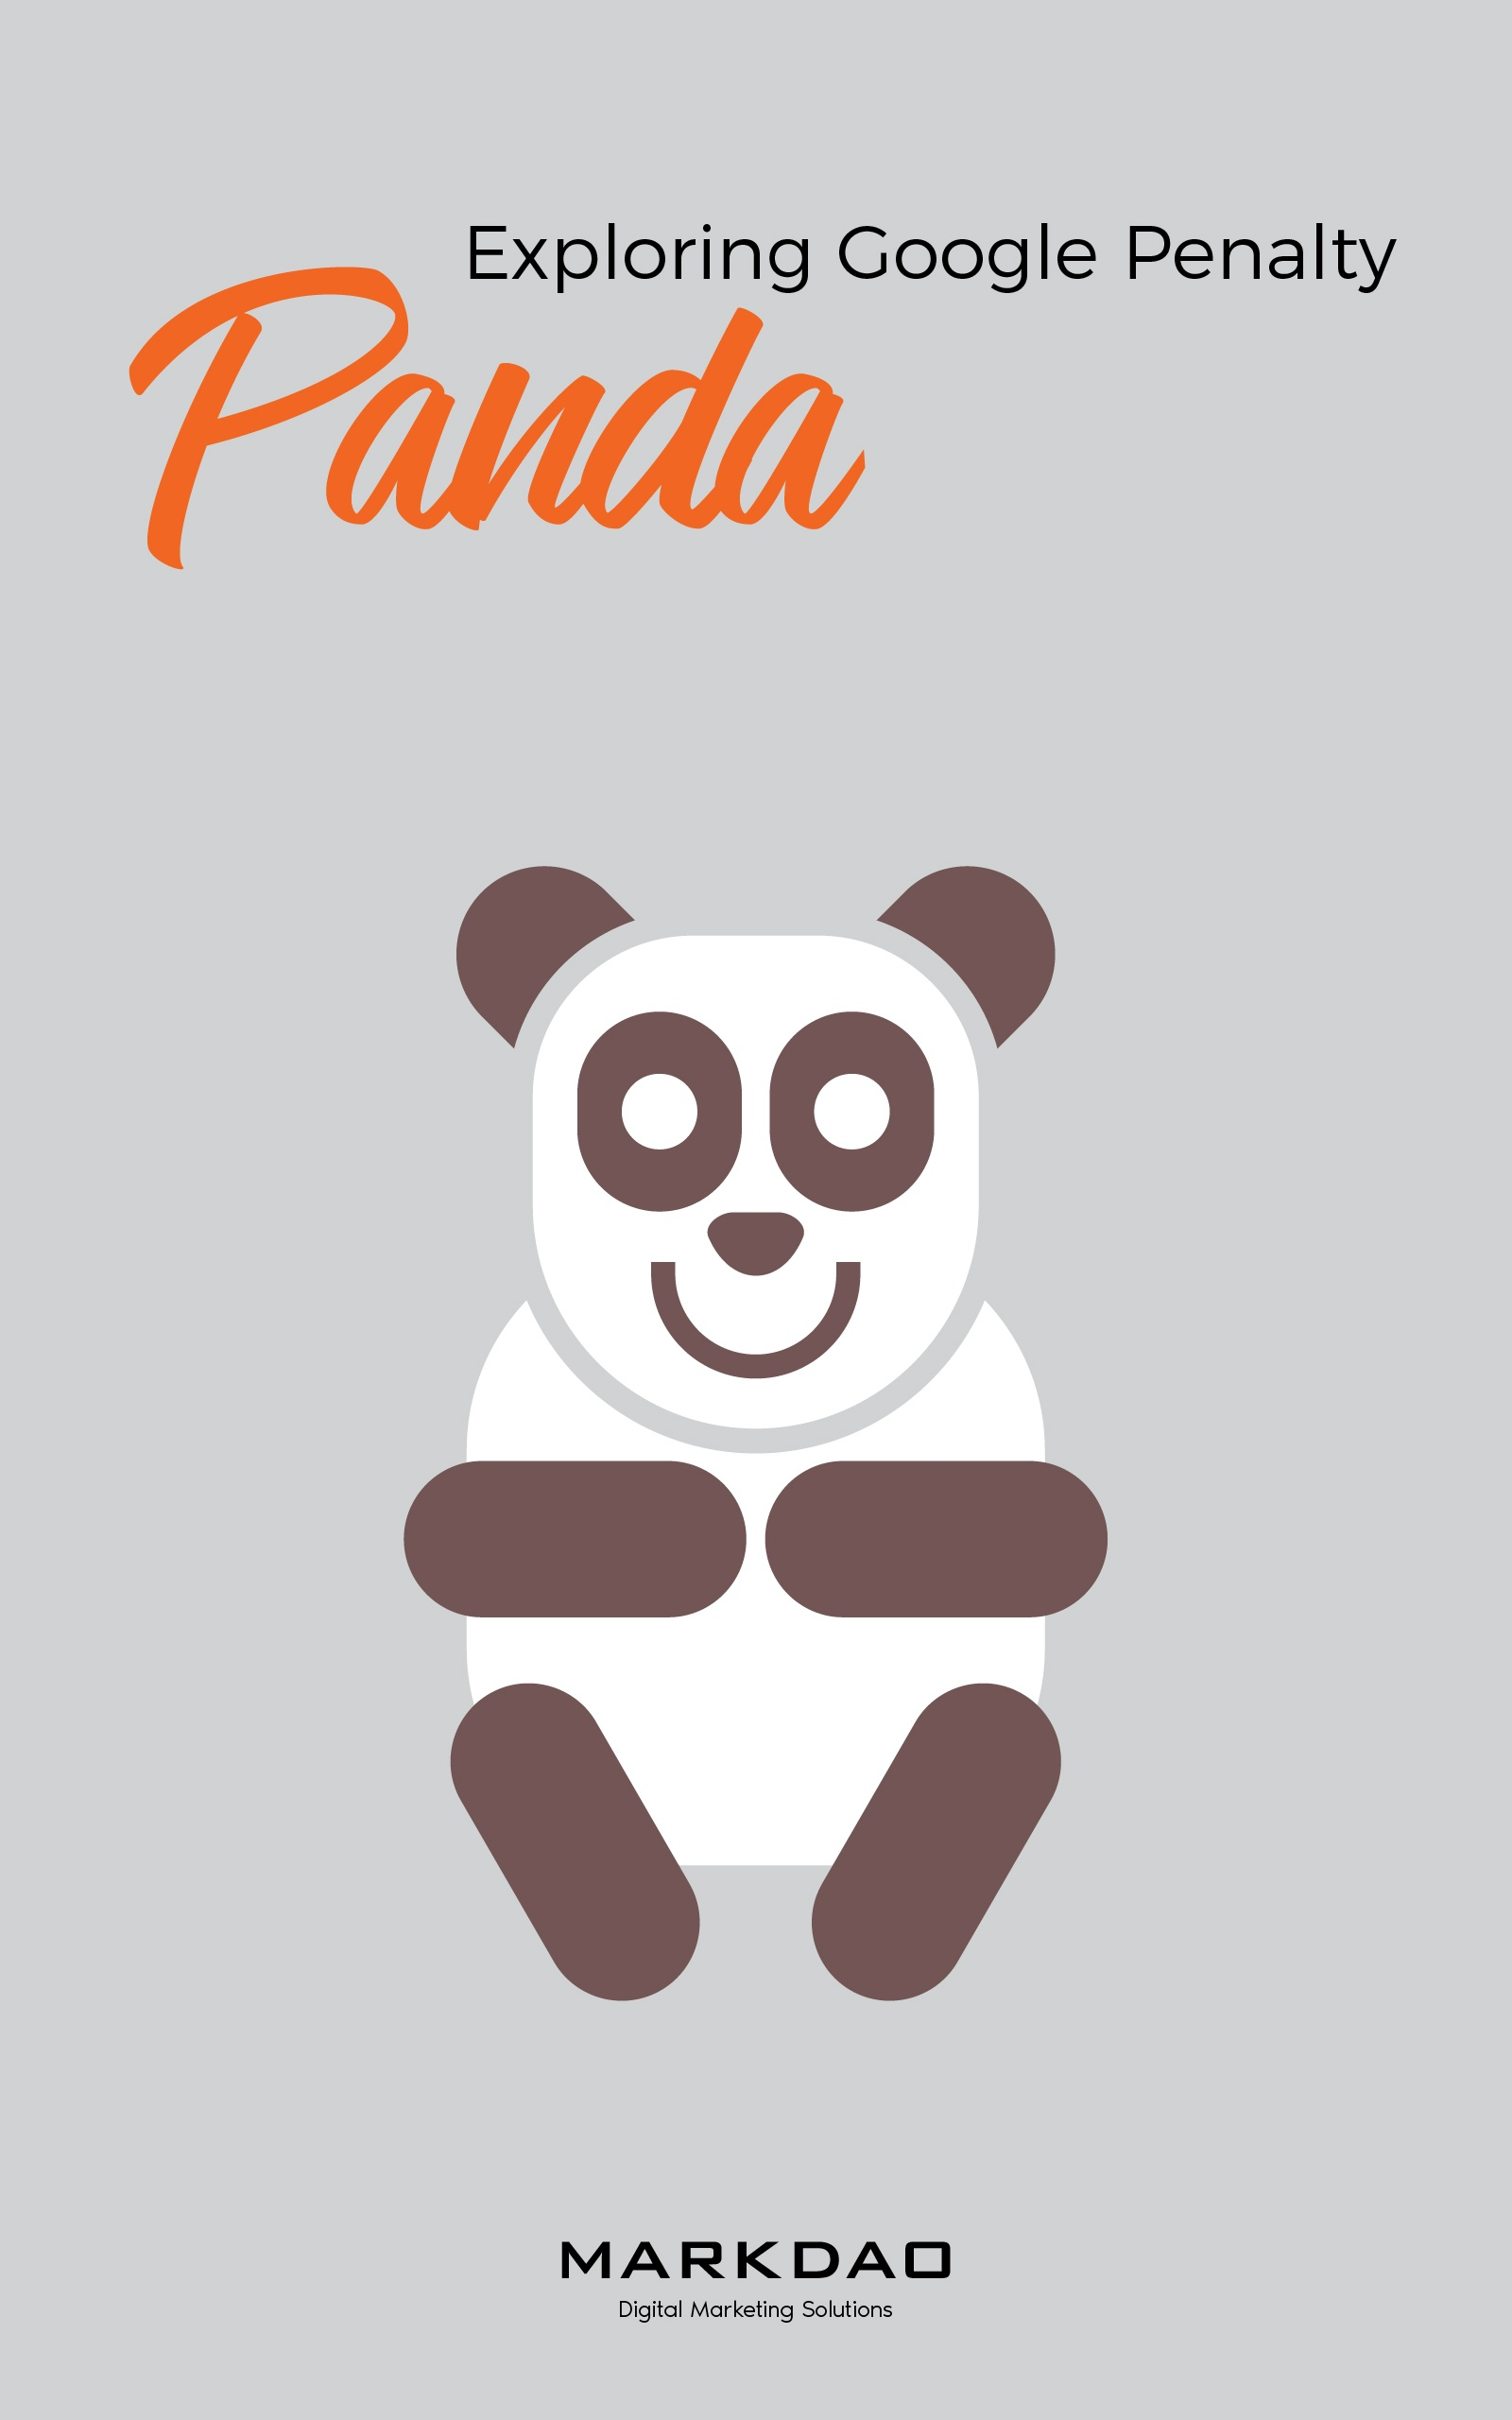 Le marketing digital : Google Panda